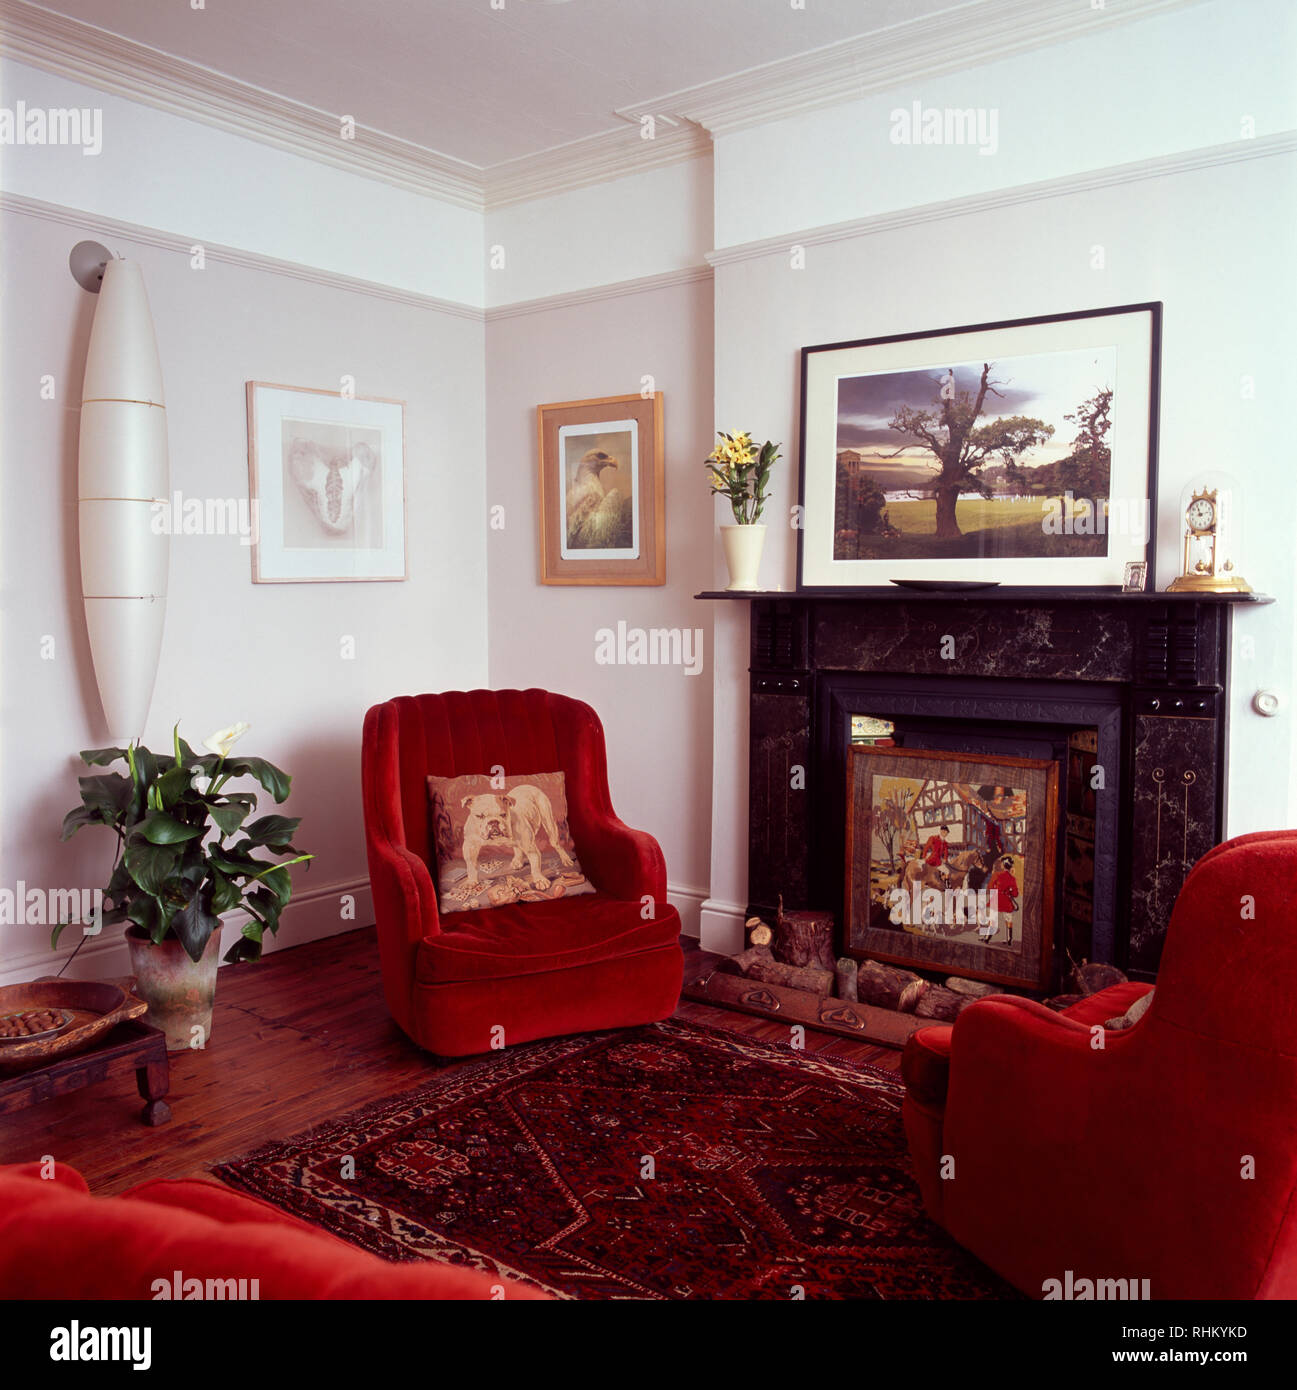 Red Velvet Chairs Beside Marble Fireplace In Living Room Stock Photo Alamy